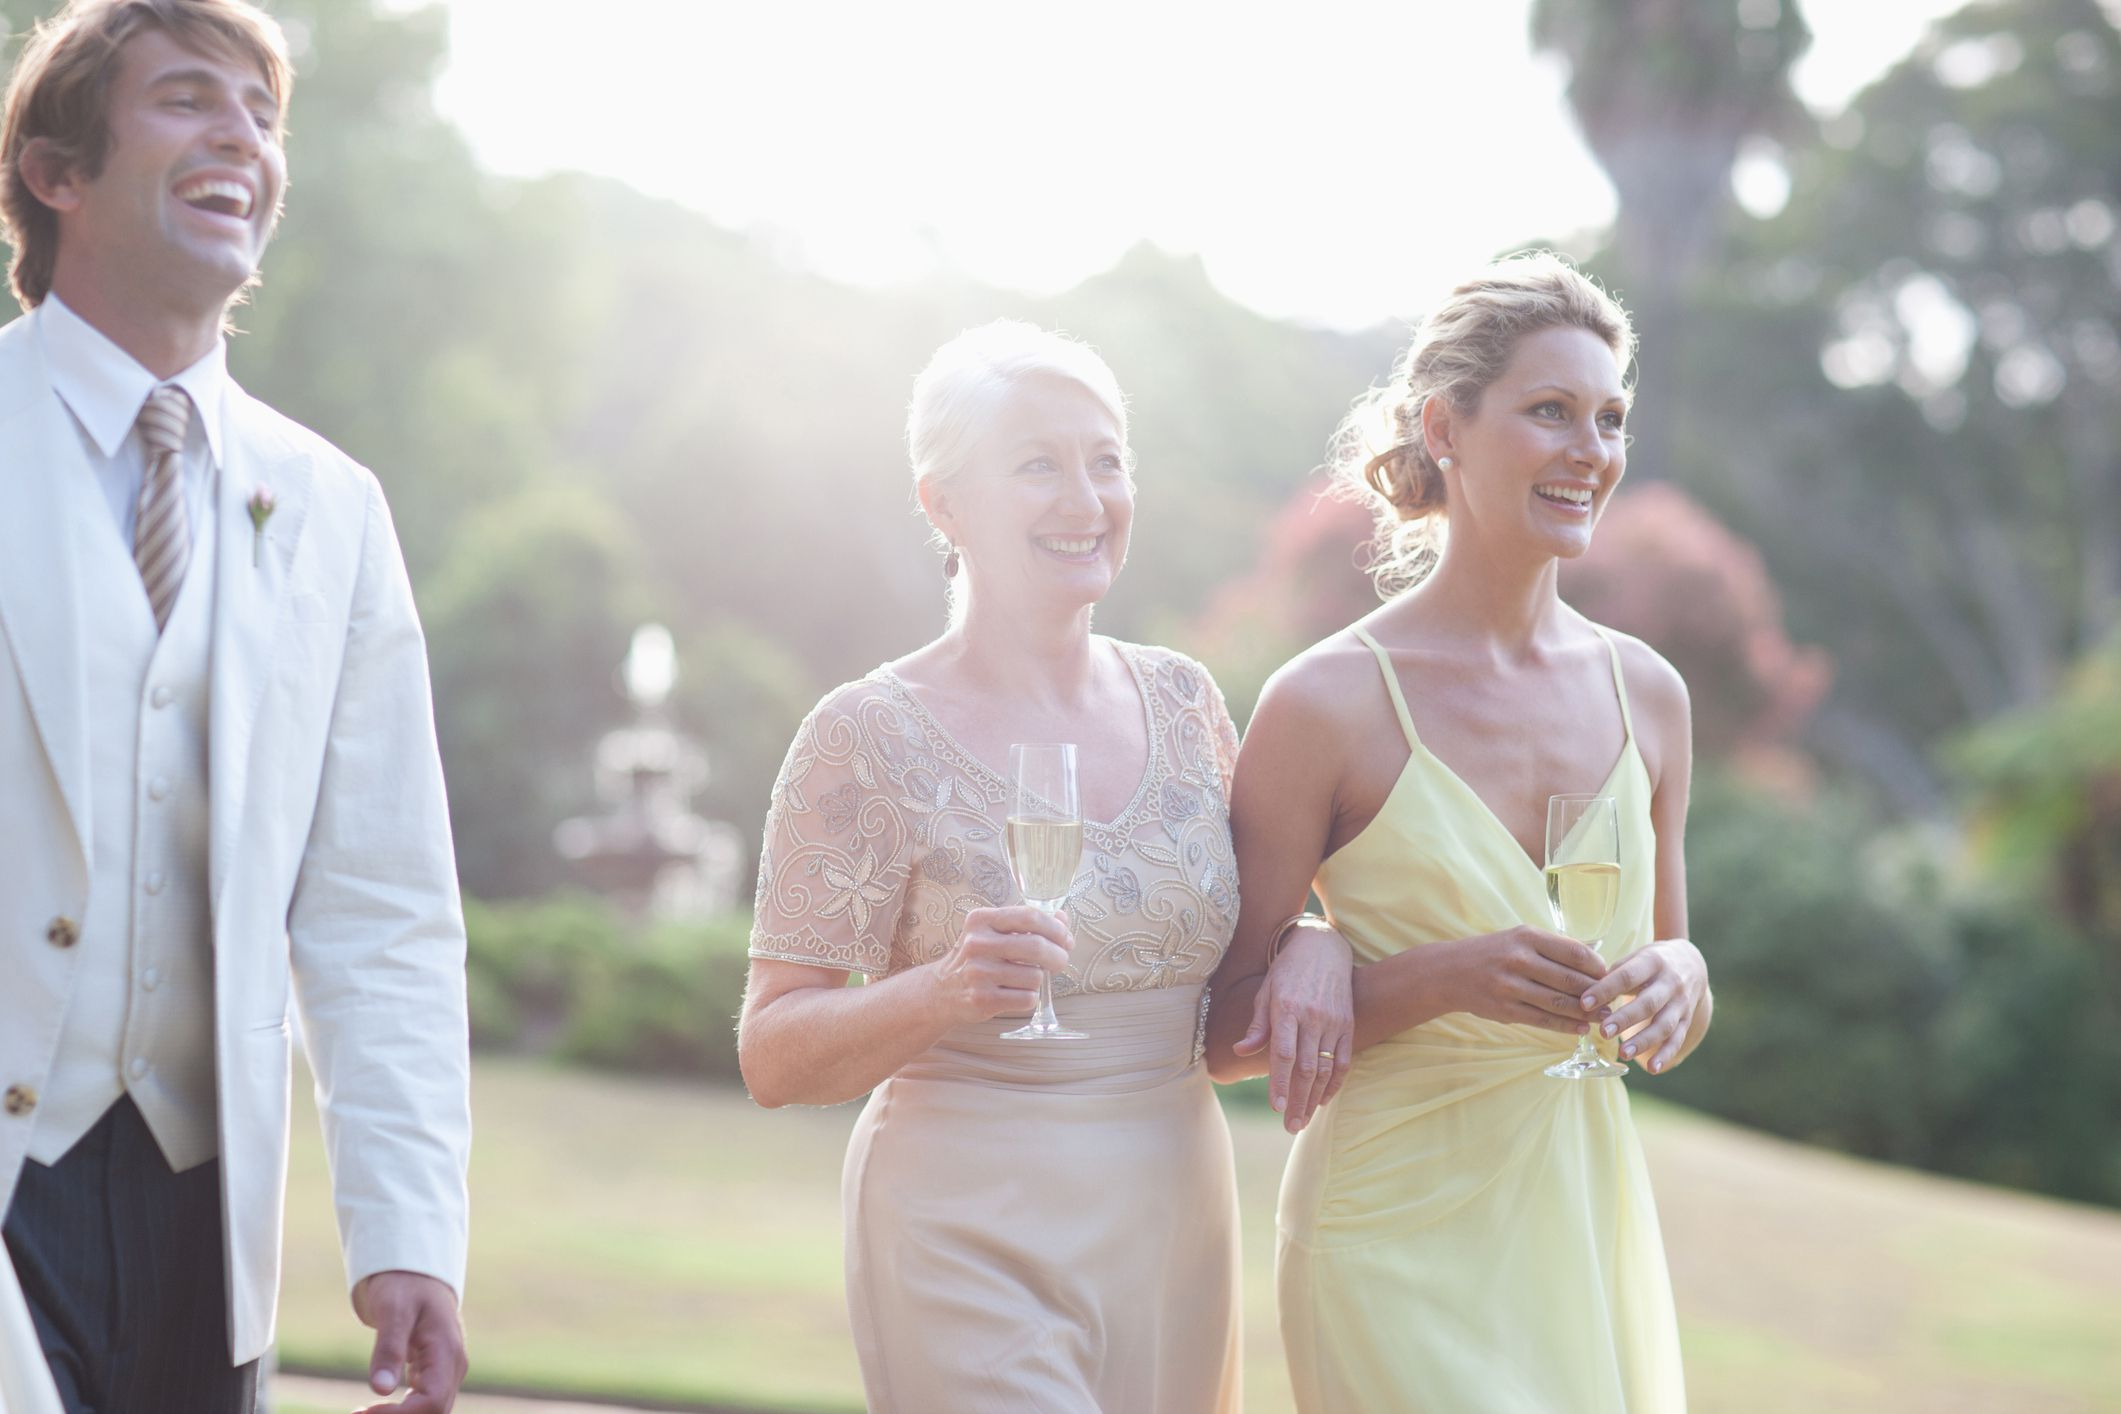 Wedding Etiquette Discover If Guests Should Wear White - Lady worst wedding guest history